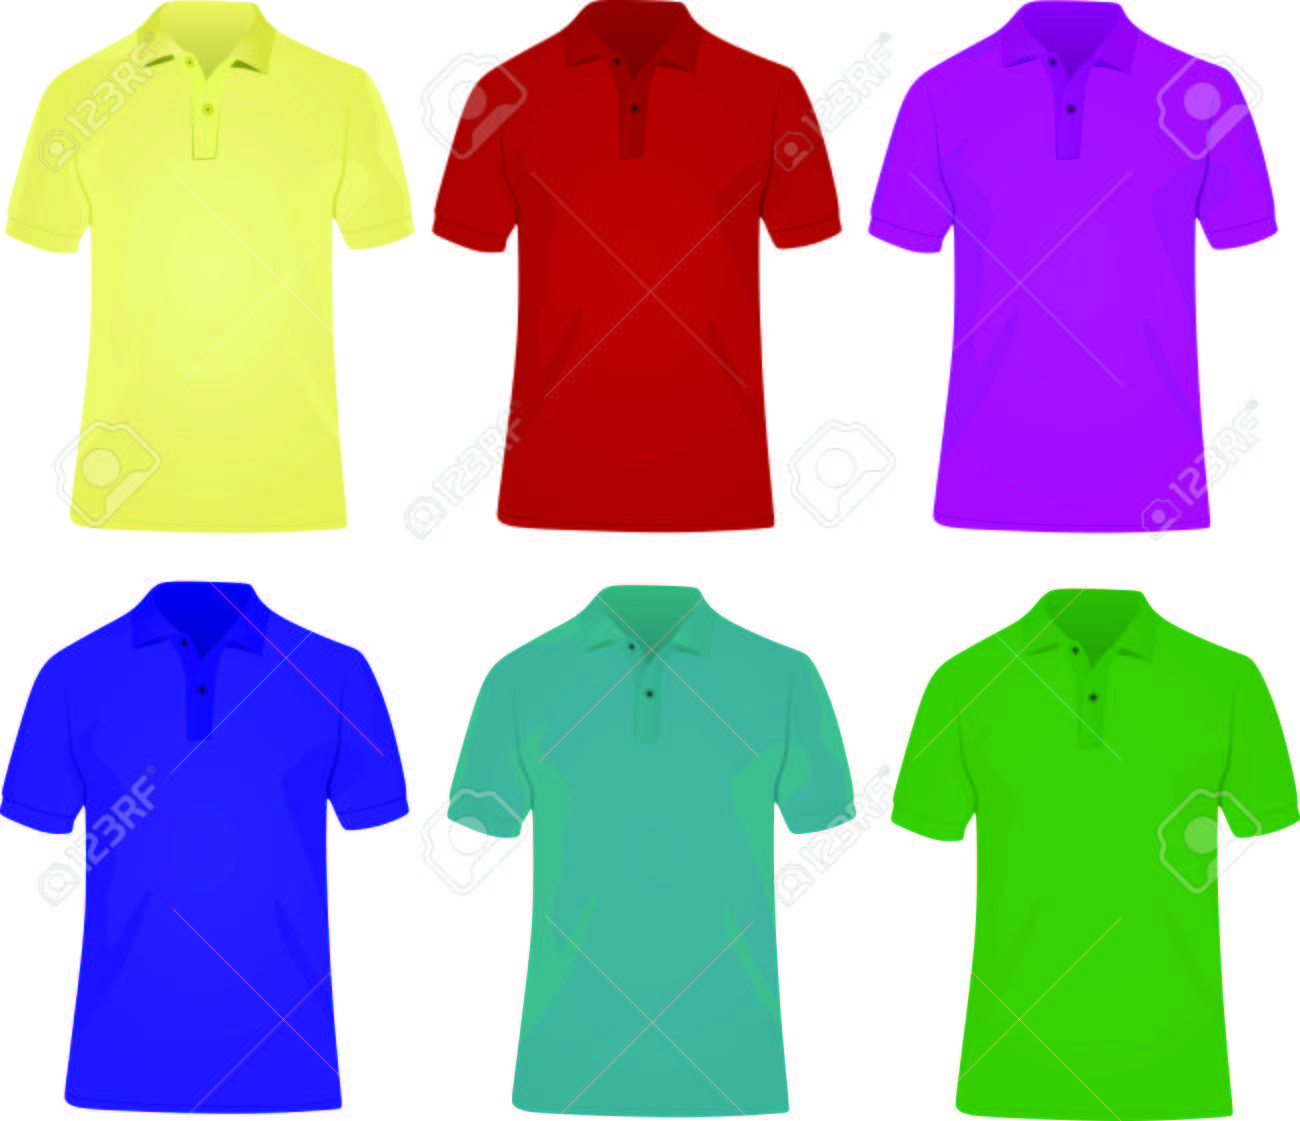 6 Polo Shirts In Different Colors Royalty Free Cliparts Vectors